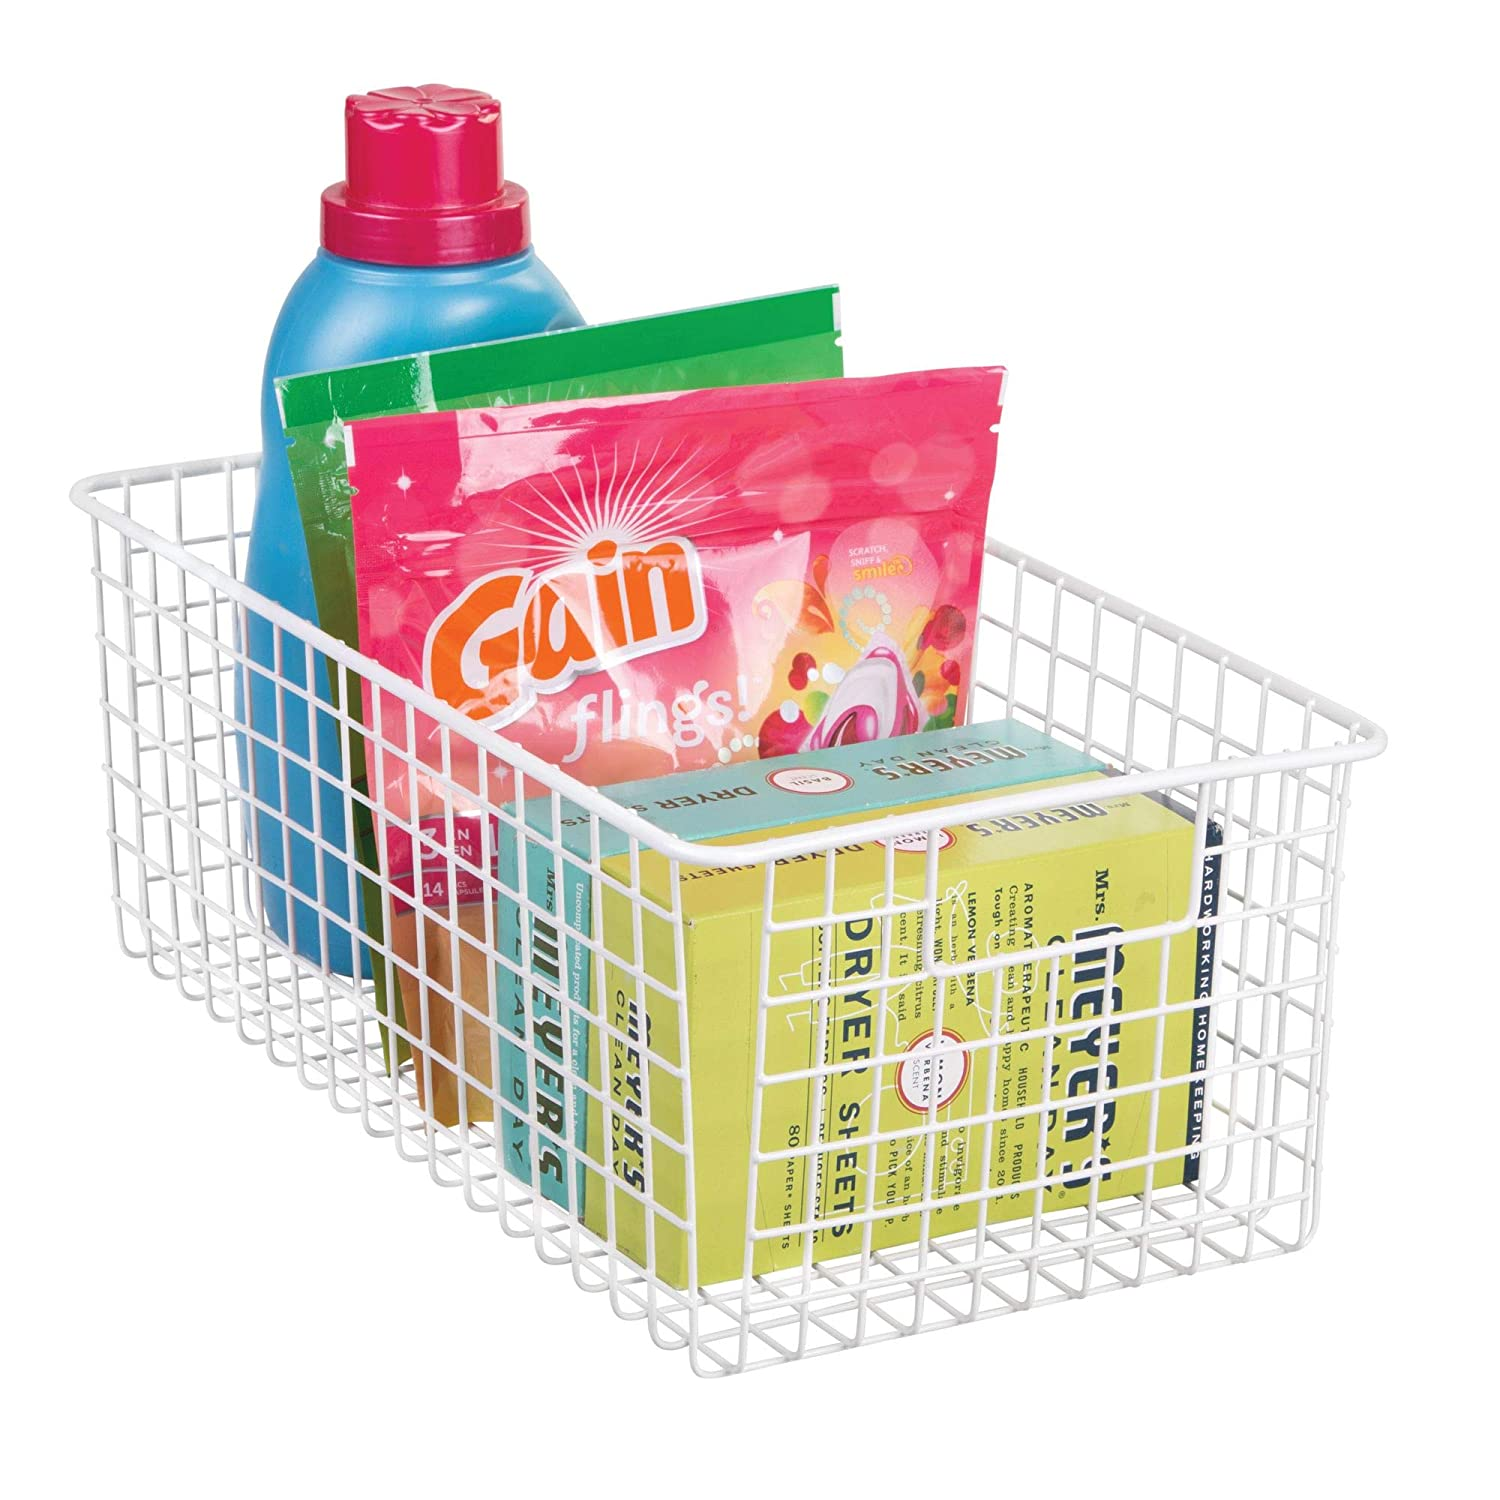 White 90242 Pantry InterDesign Classico Wire Storage Basket with Handles for Organizing Kitchen Cabinets